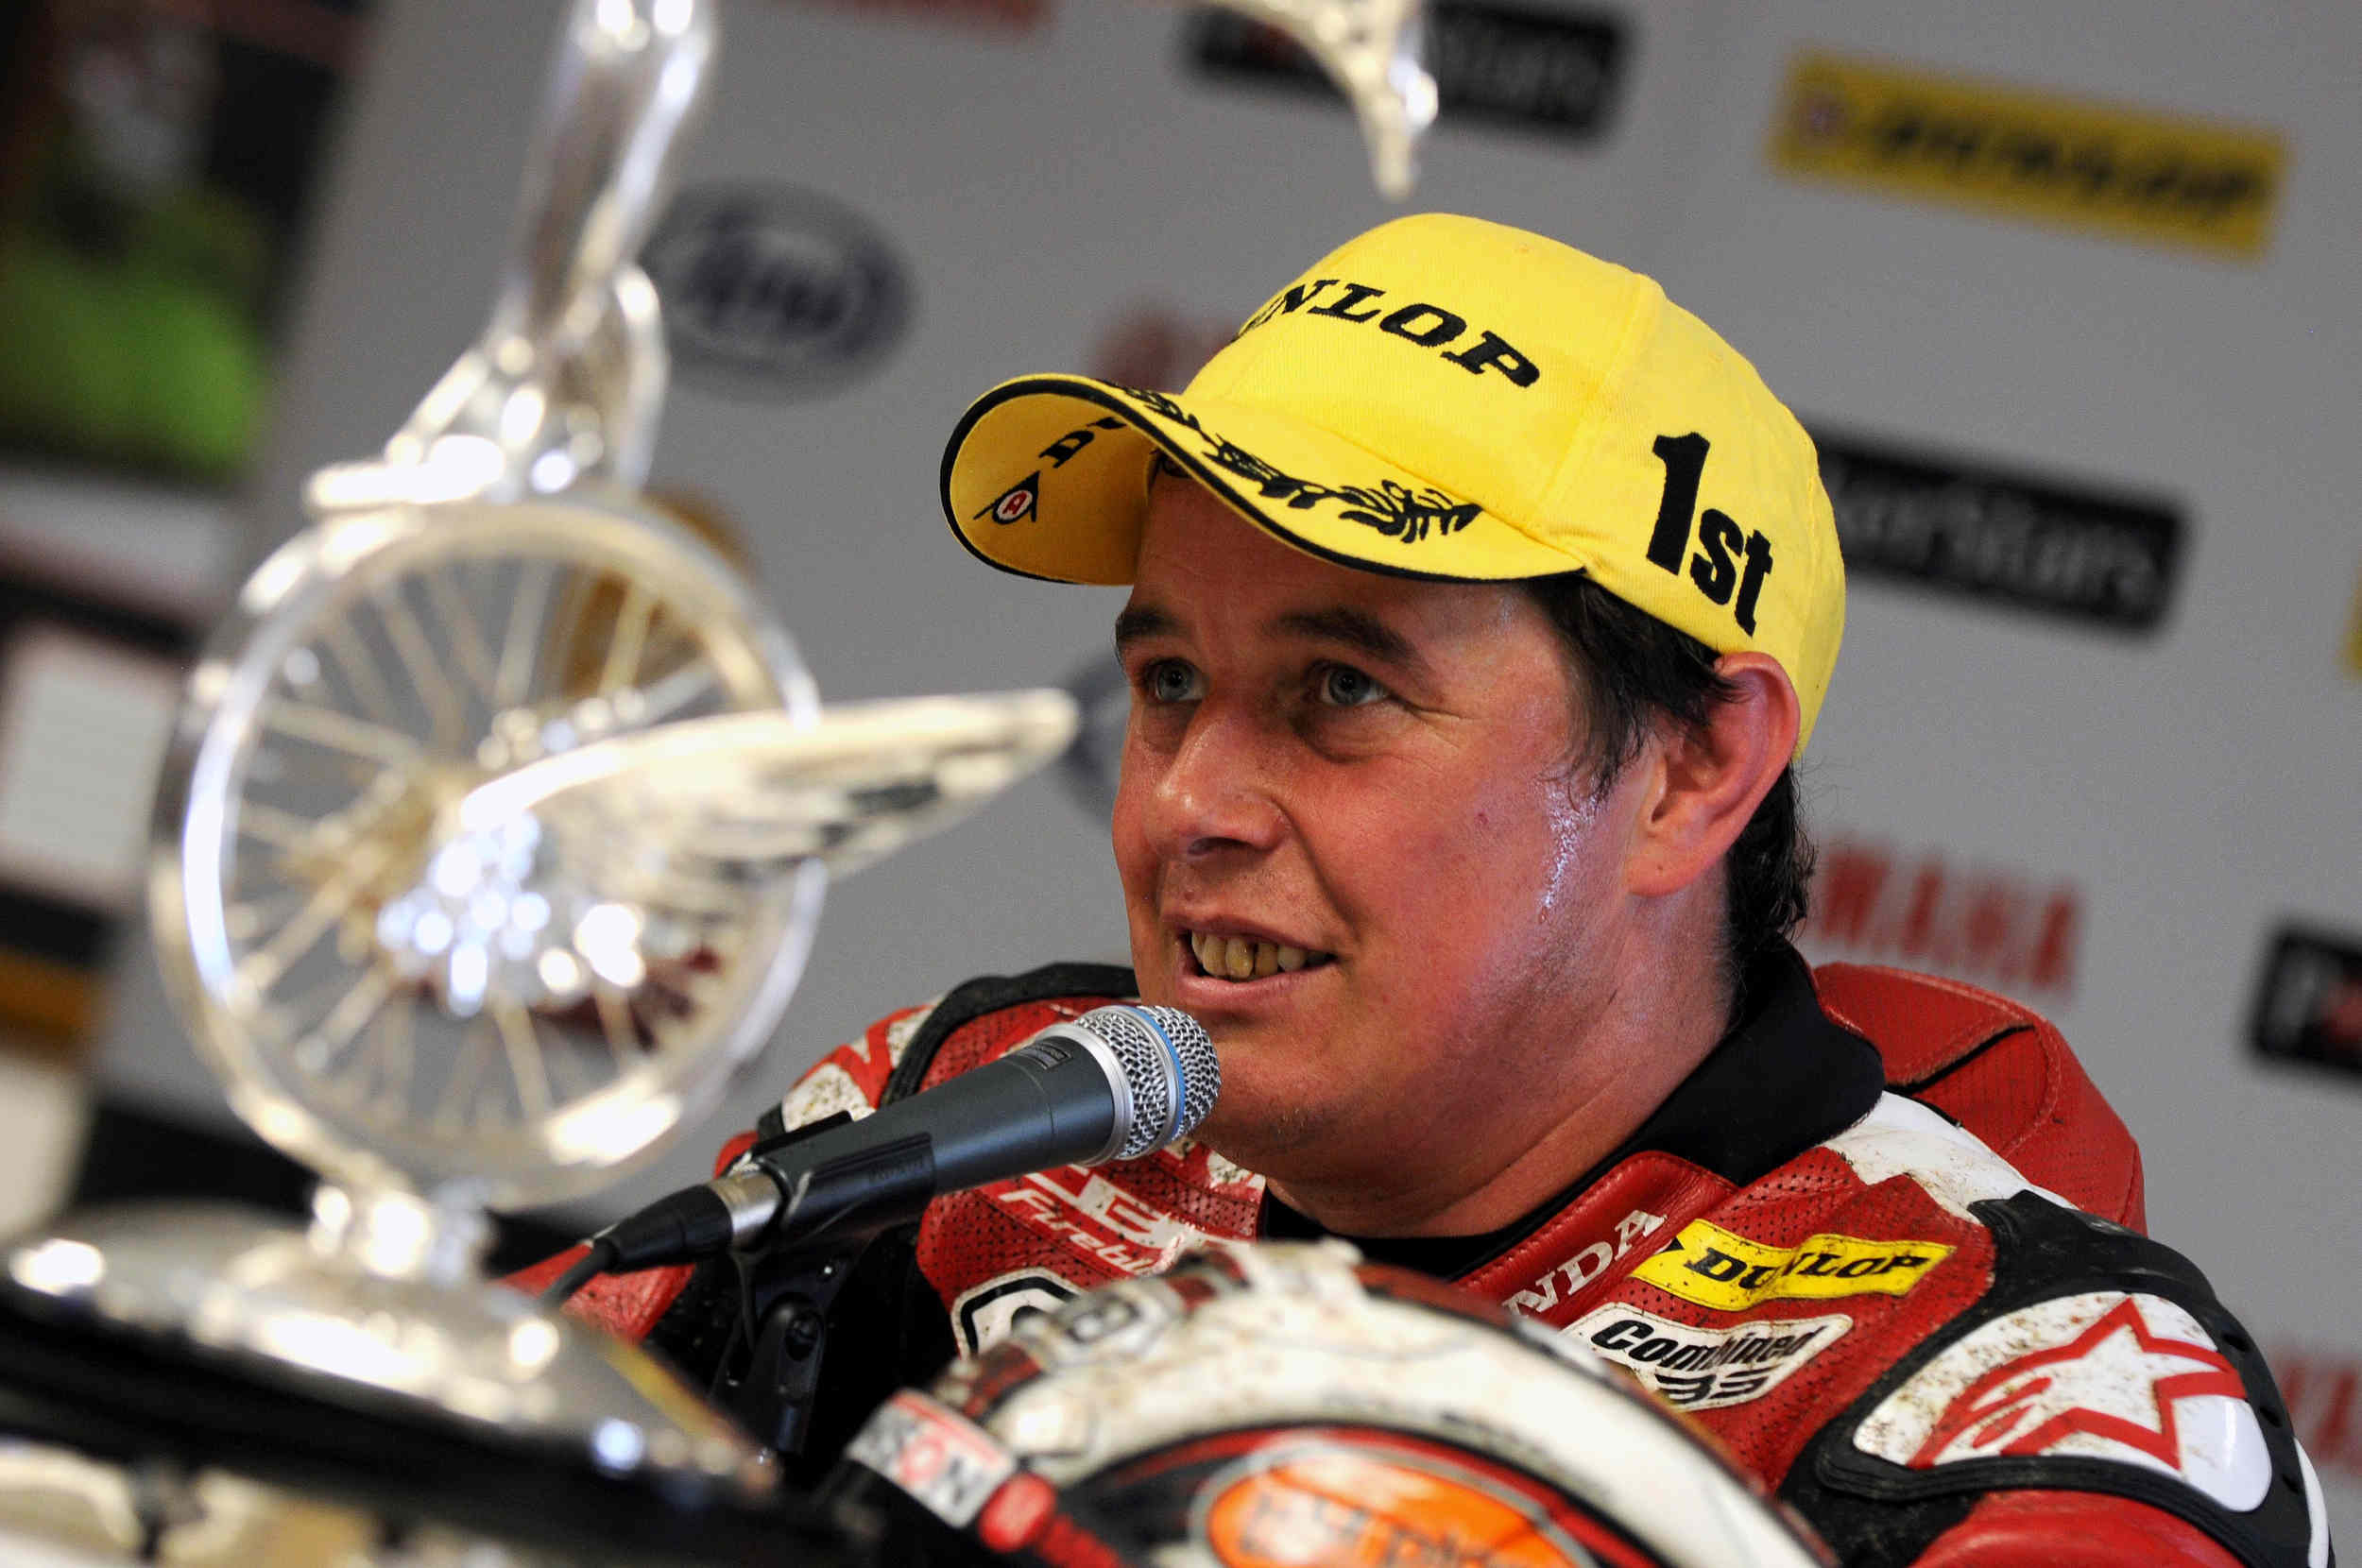 John McGuinness wins the 2013 Senior race to reach 20 TT wins